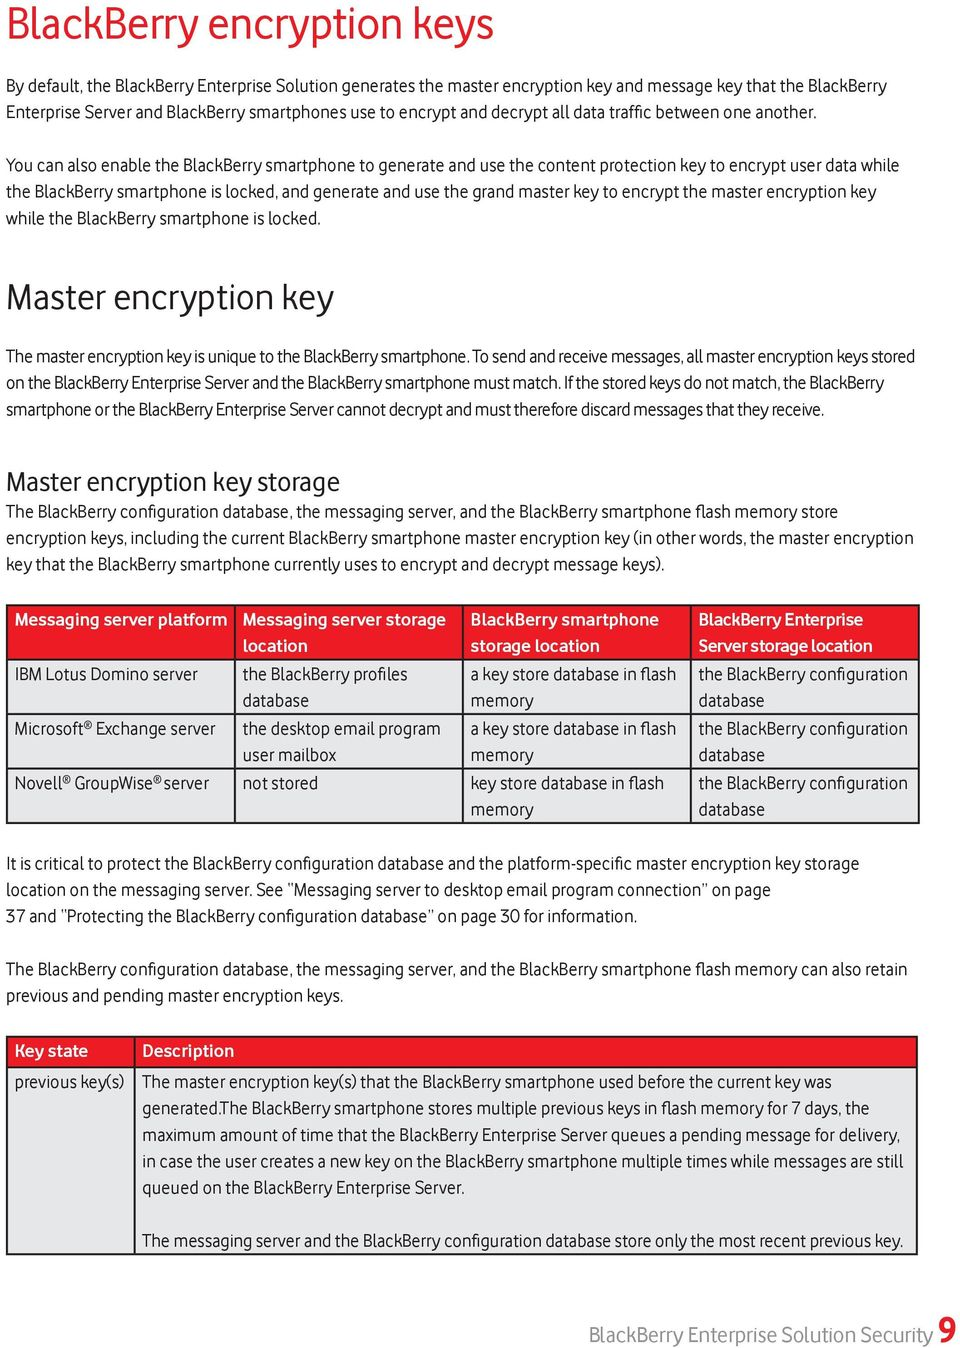 You can also enable the BlackBerry smartphone to generate and use the content protection key to encrypt user data while the BlackBerry smartphone is locked, and generate and use the grand master key